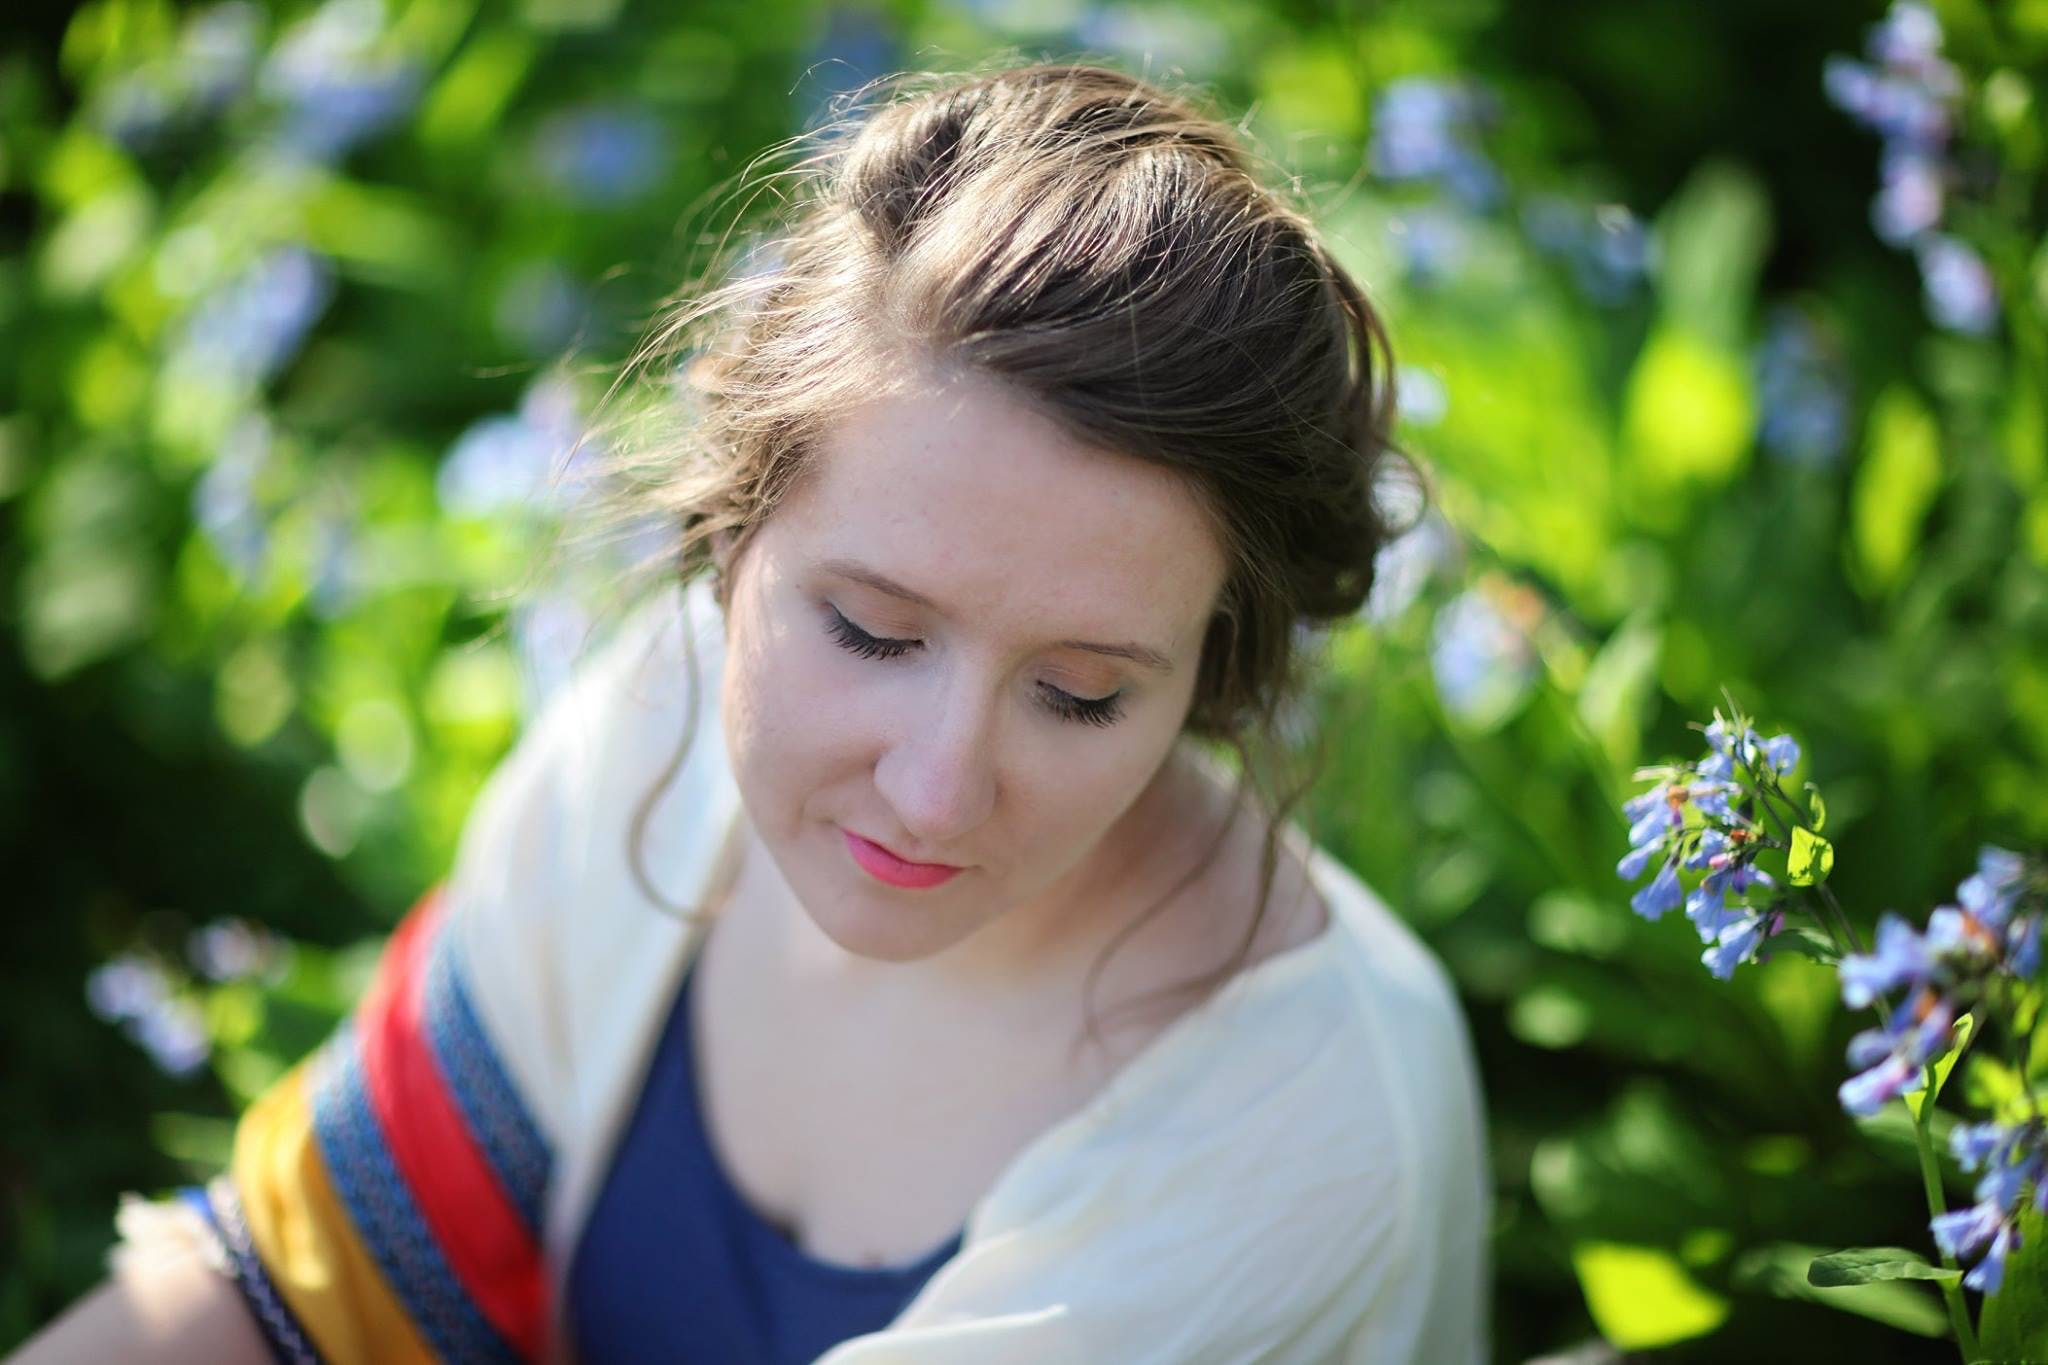 Selective Focus Photography of Woman Beside Blue Petaled Flowers